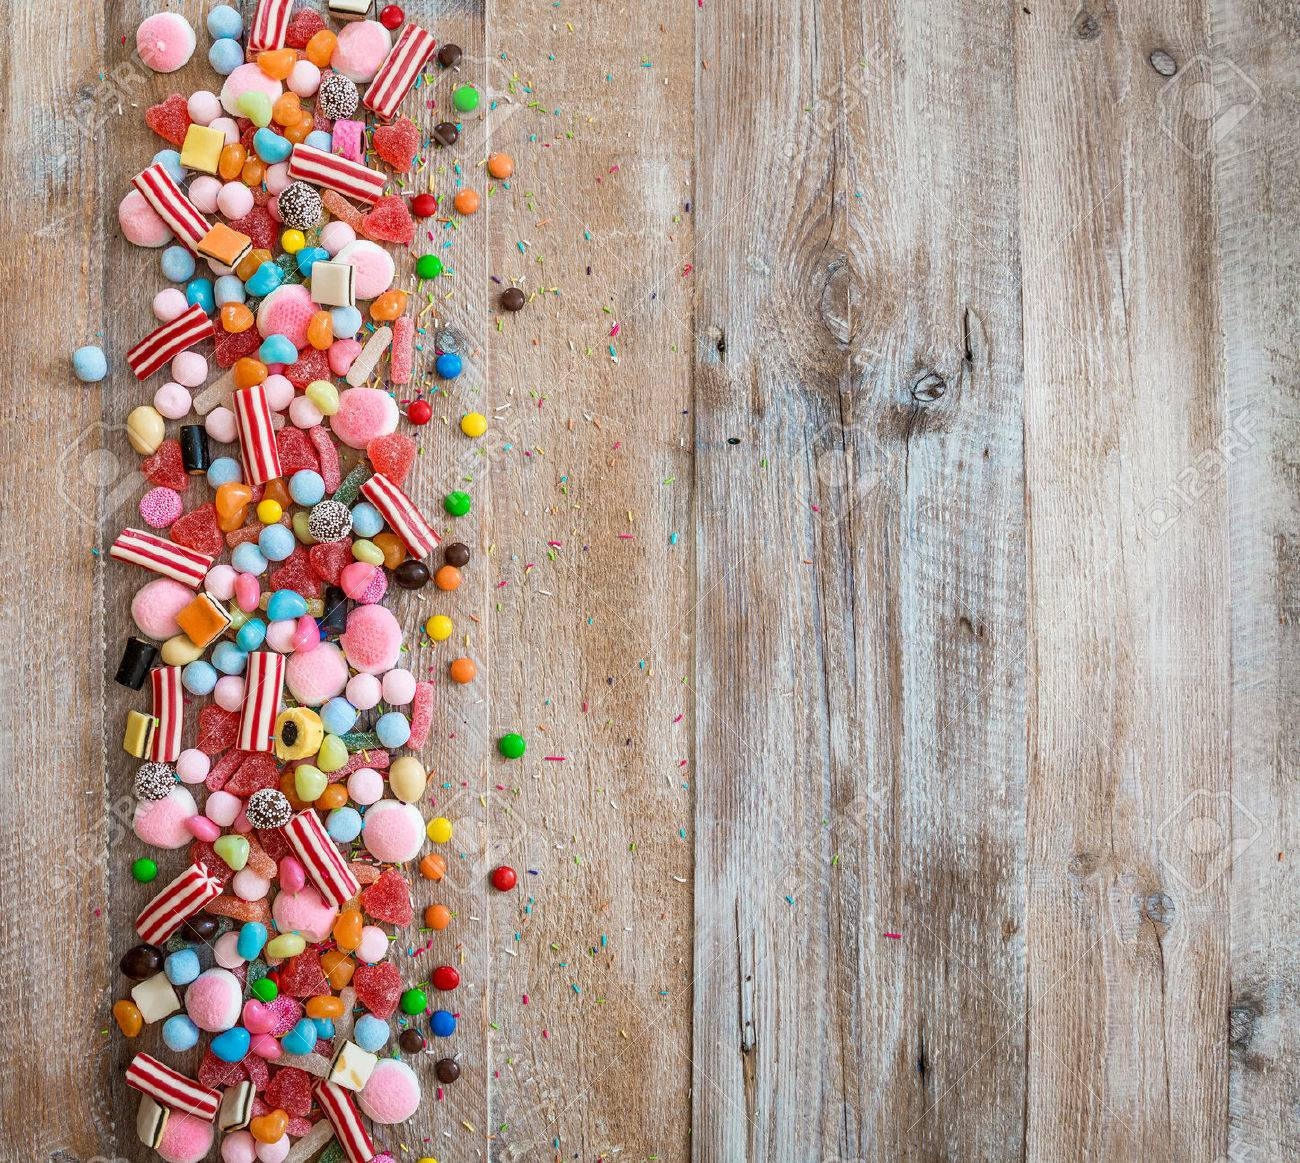 variety of candies on a wooden background with space for text - 46656026